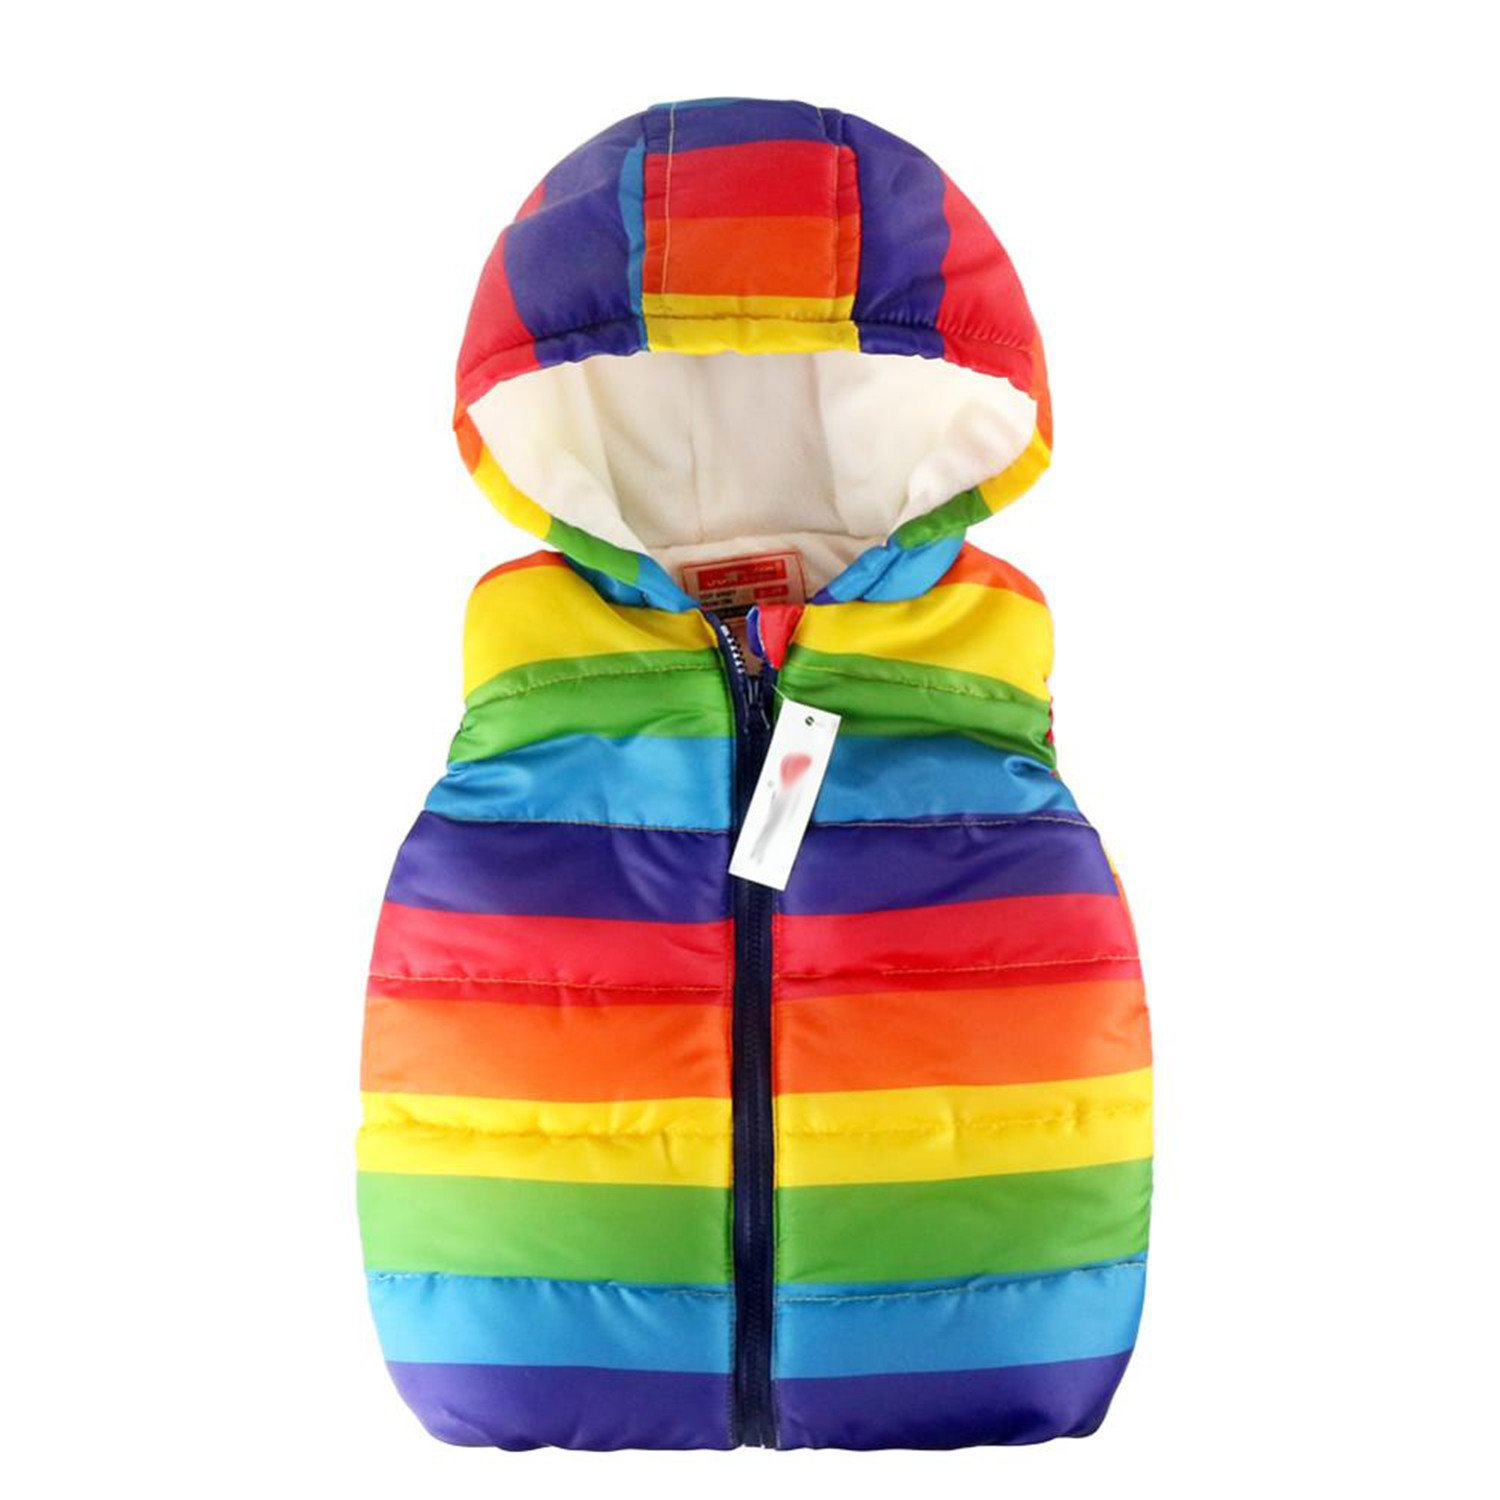 bfdd8c717 Amazon.com  Sonms Boy Vests Jacket Kids Rainbow Striped Children ...